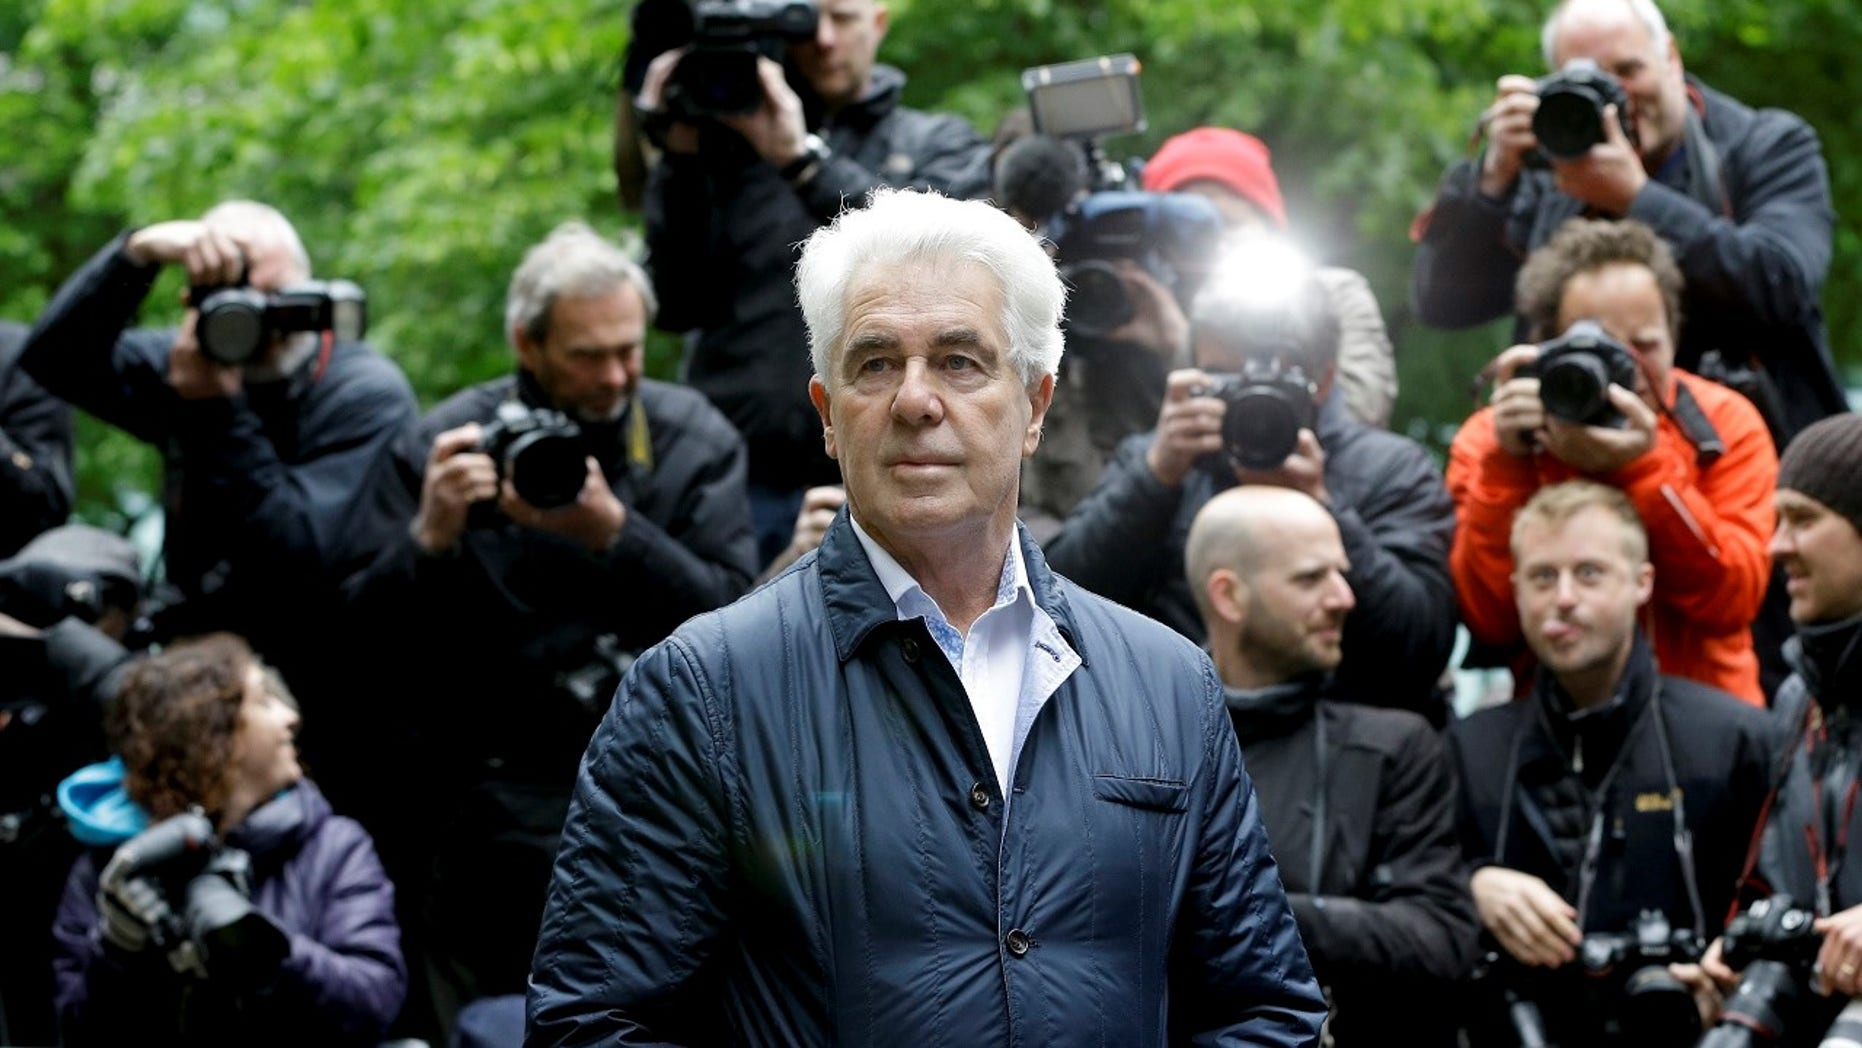 Disgraced celebrity publicist Max Clifford died on Sunday after collapsing in prison.